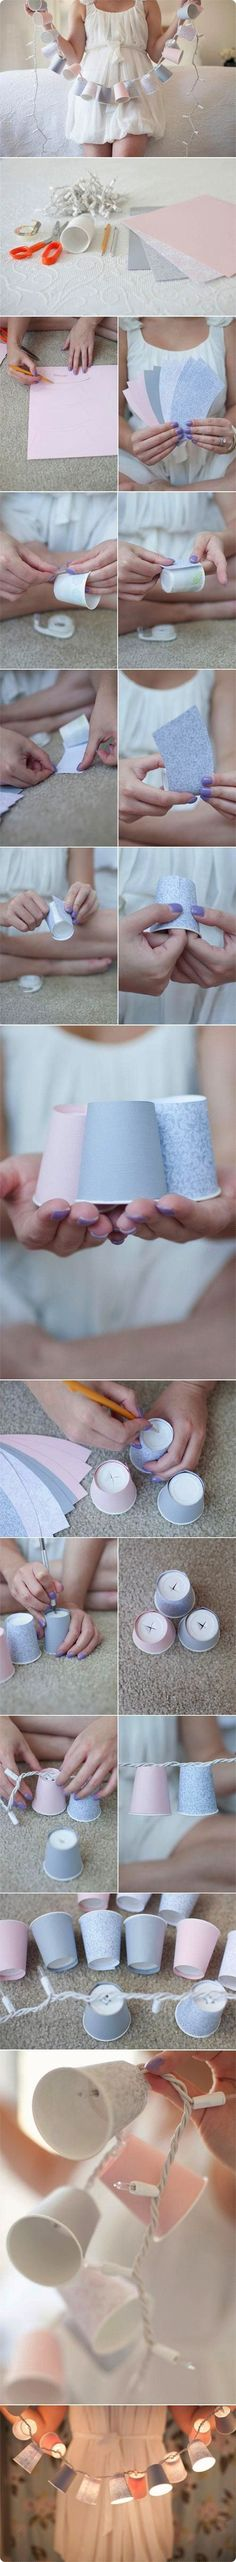 DIY  ::  Decorative Paper Cups Garland Lights....thinking cute prop for photo idea